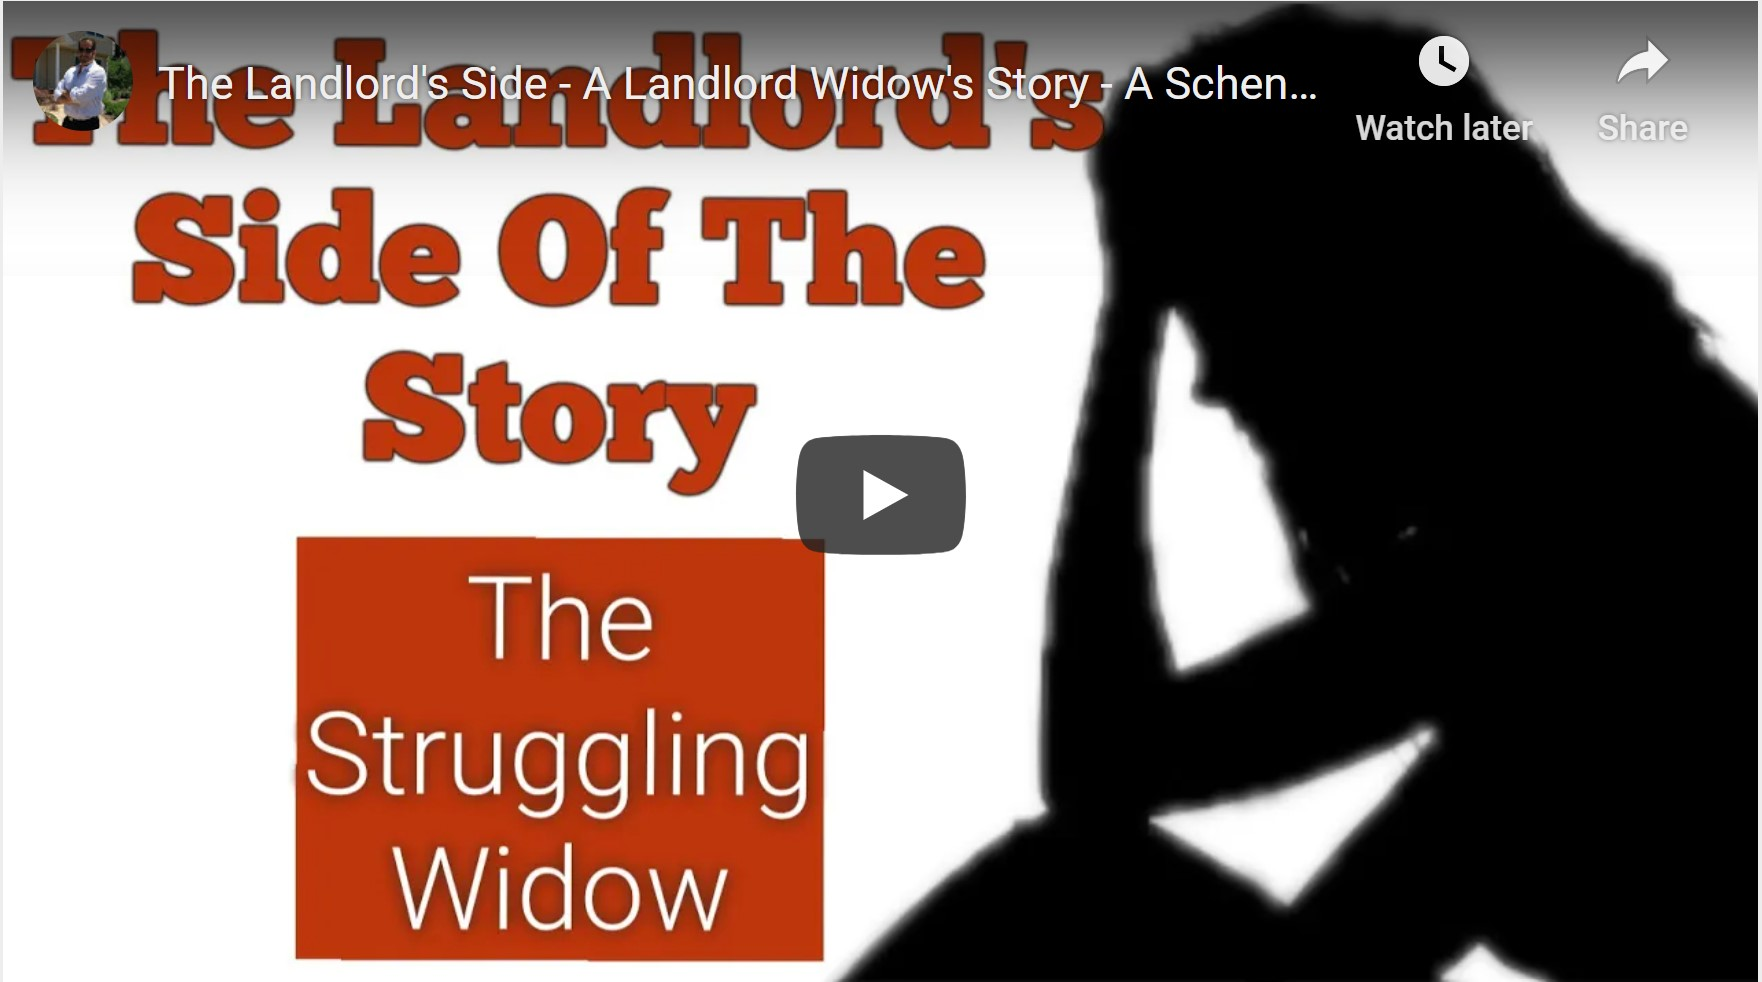 The Landlord's Side - A Landlord Widow's Story - A Schenectady Landlord